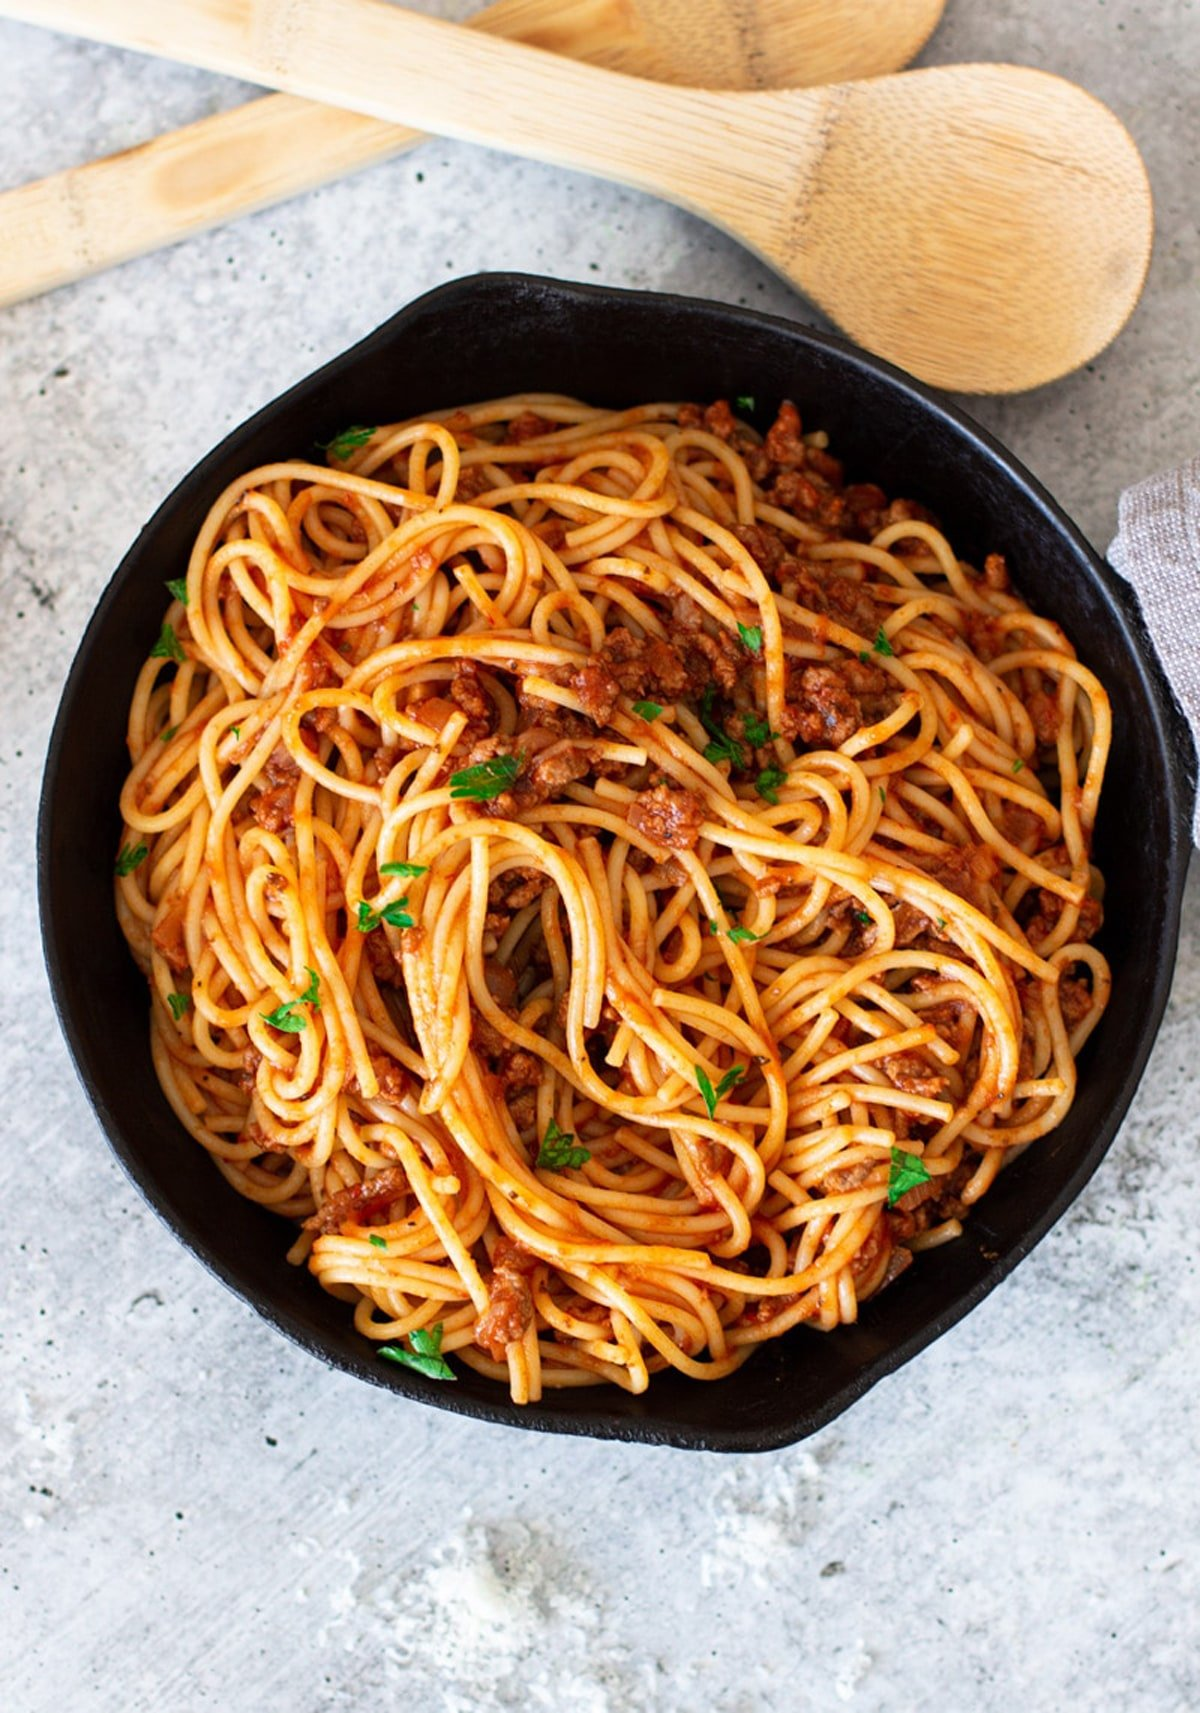 Skillet containing noodles and marinara sauce, spoons on table.